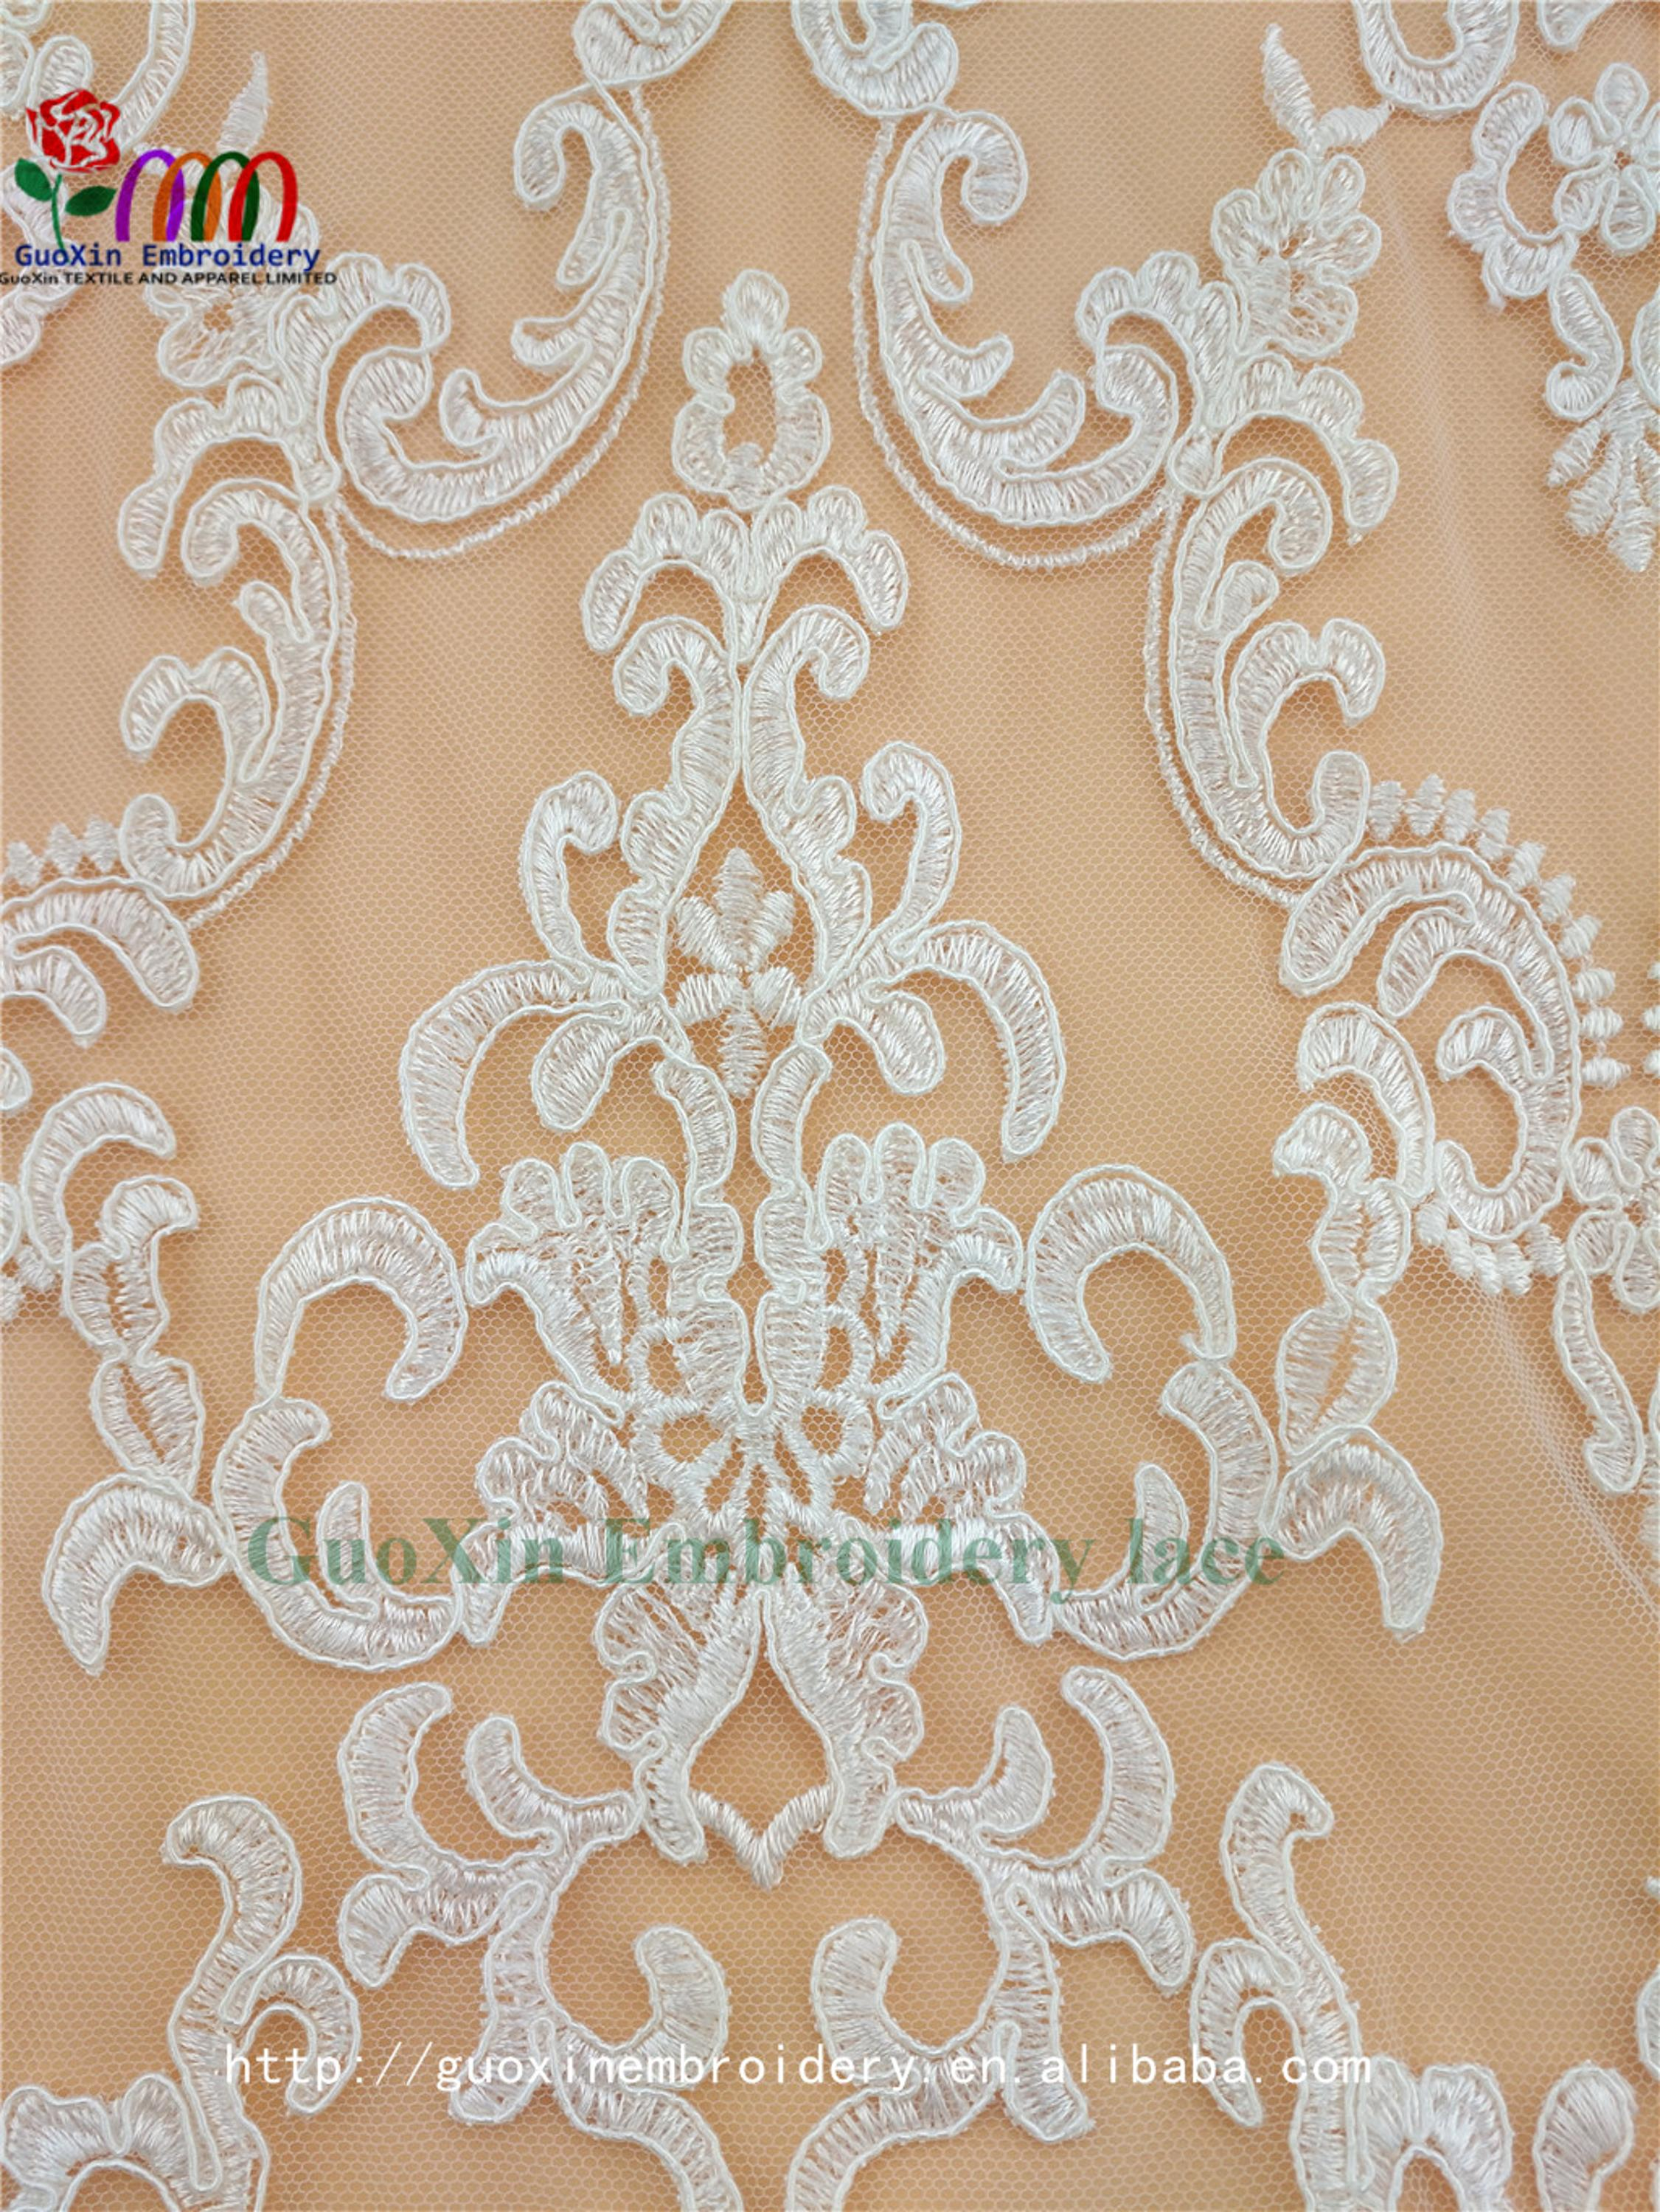 embroidery tulle manufacture wholesale wedding veil ivory lace fabric with cording (5).jpg